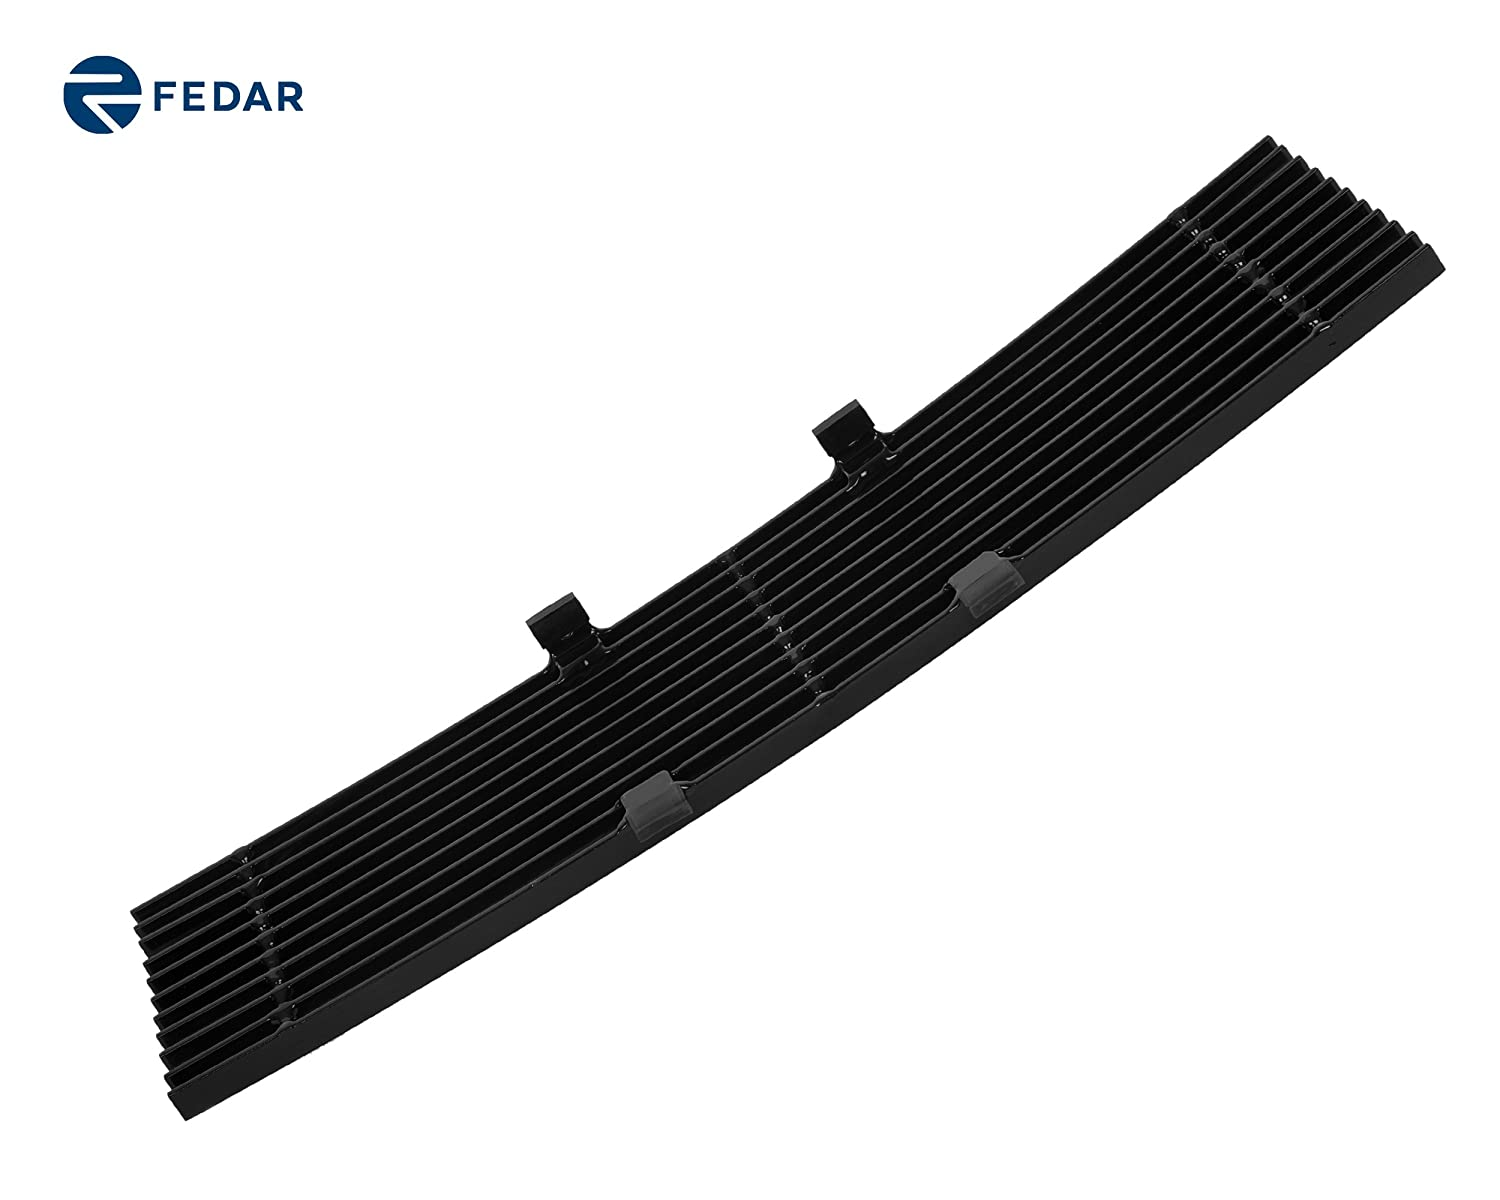 Fedar Lower Bumper Overlay Billet Grille Insert for 2009-2014 Ford F-150 Selected Models